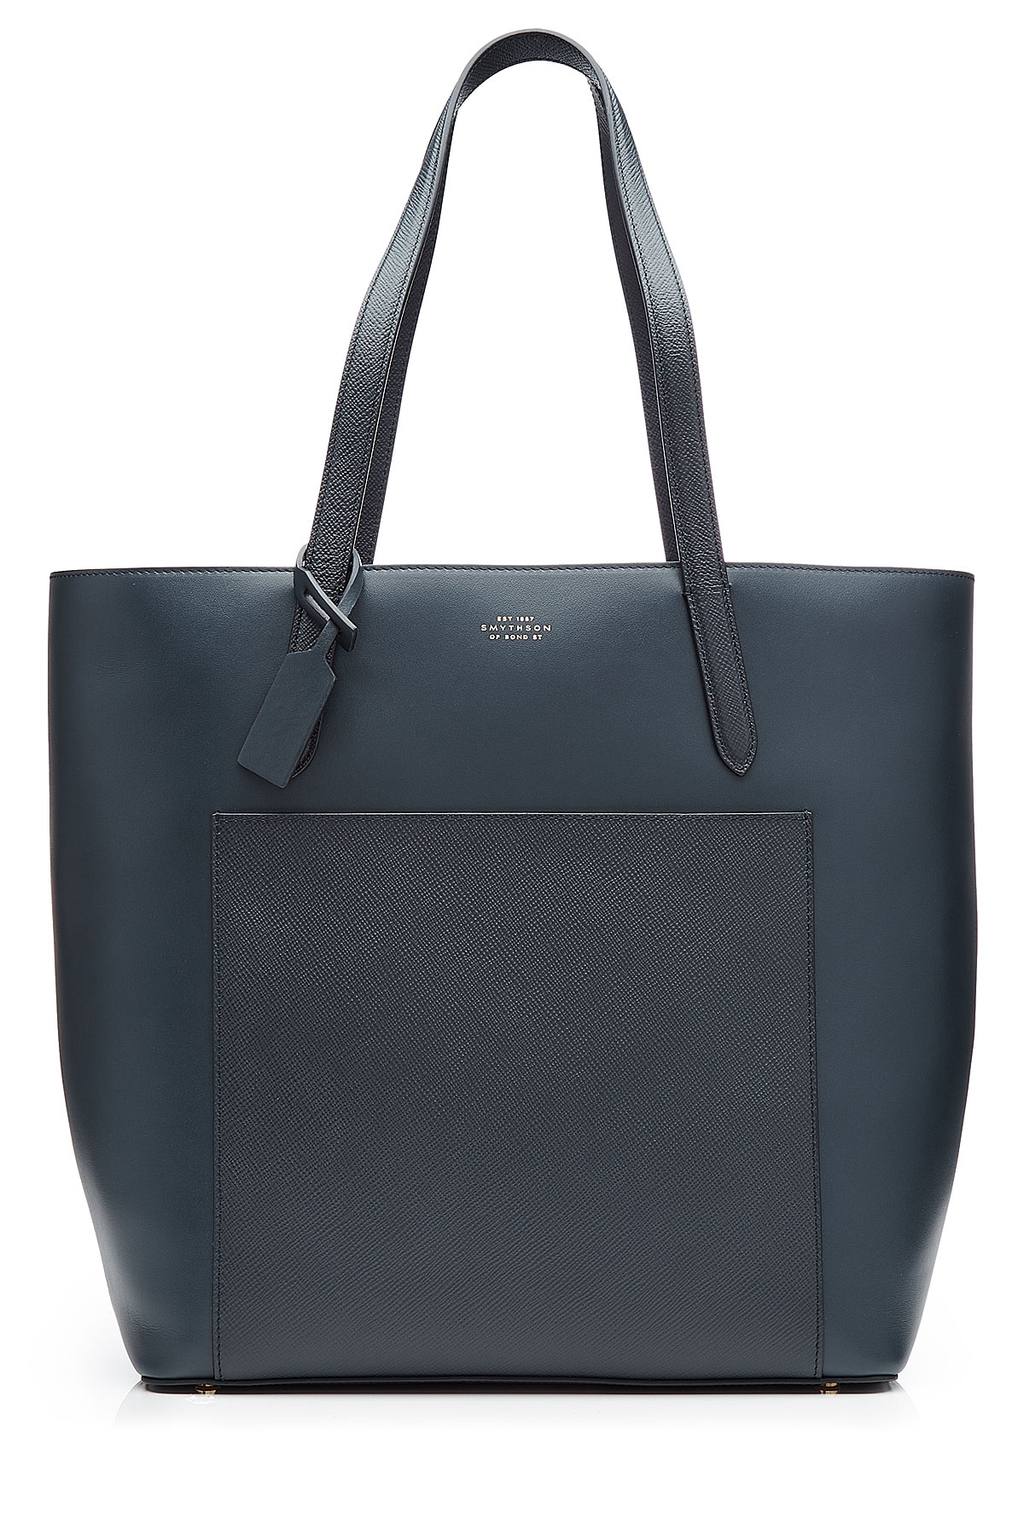 Leather North South Tote Blue - predominant colour: navy; occasions: casual; type of pattern: standard; style: tote; length: shoulder (tucks under arm); size: standard; material: leather; pattern: plain; finish: plain; wardrobe: investment; season: a/w 2016